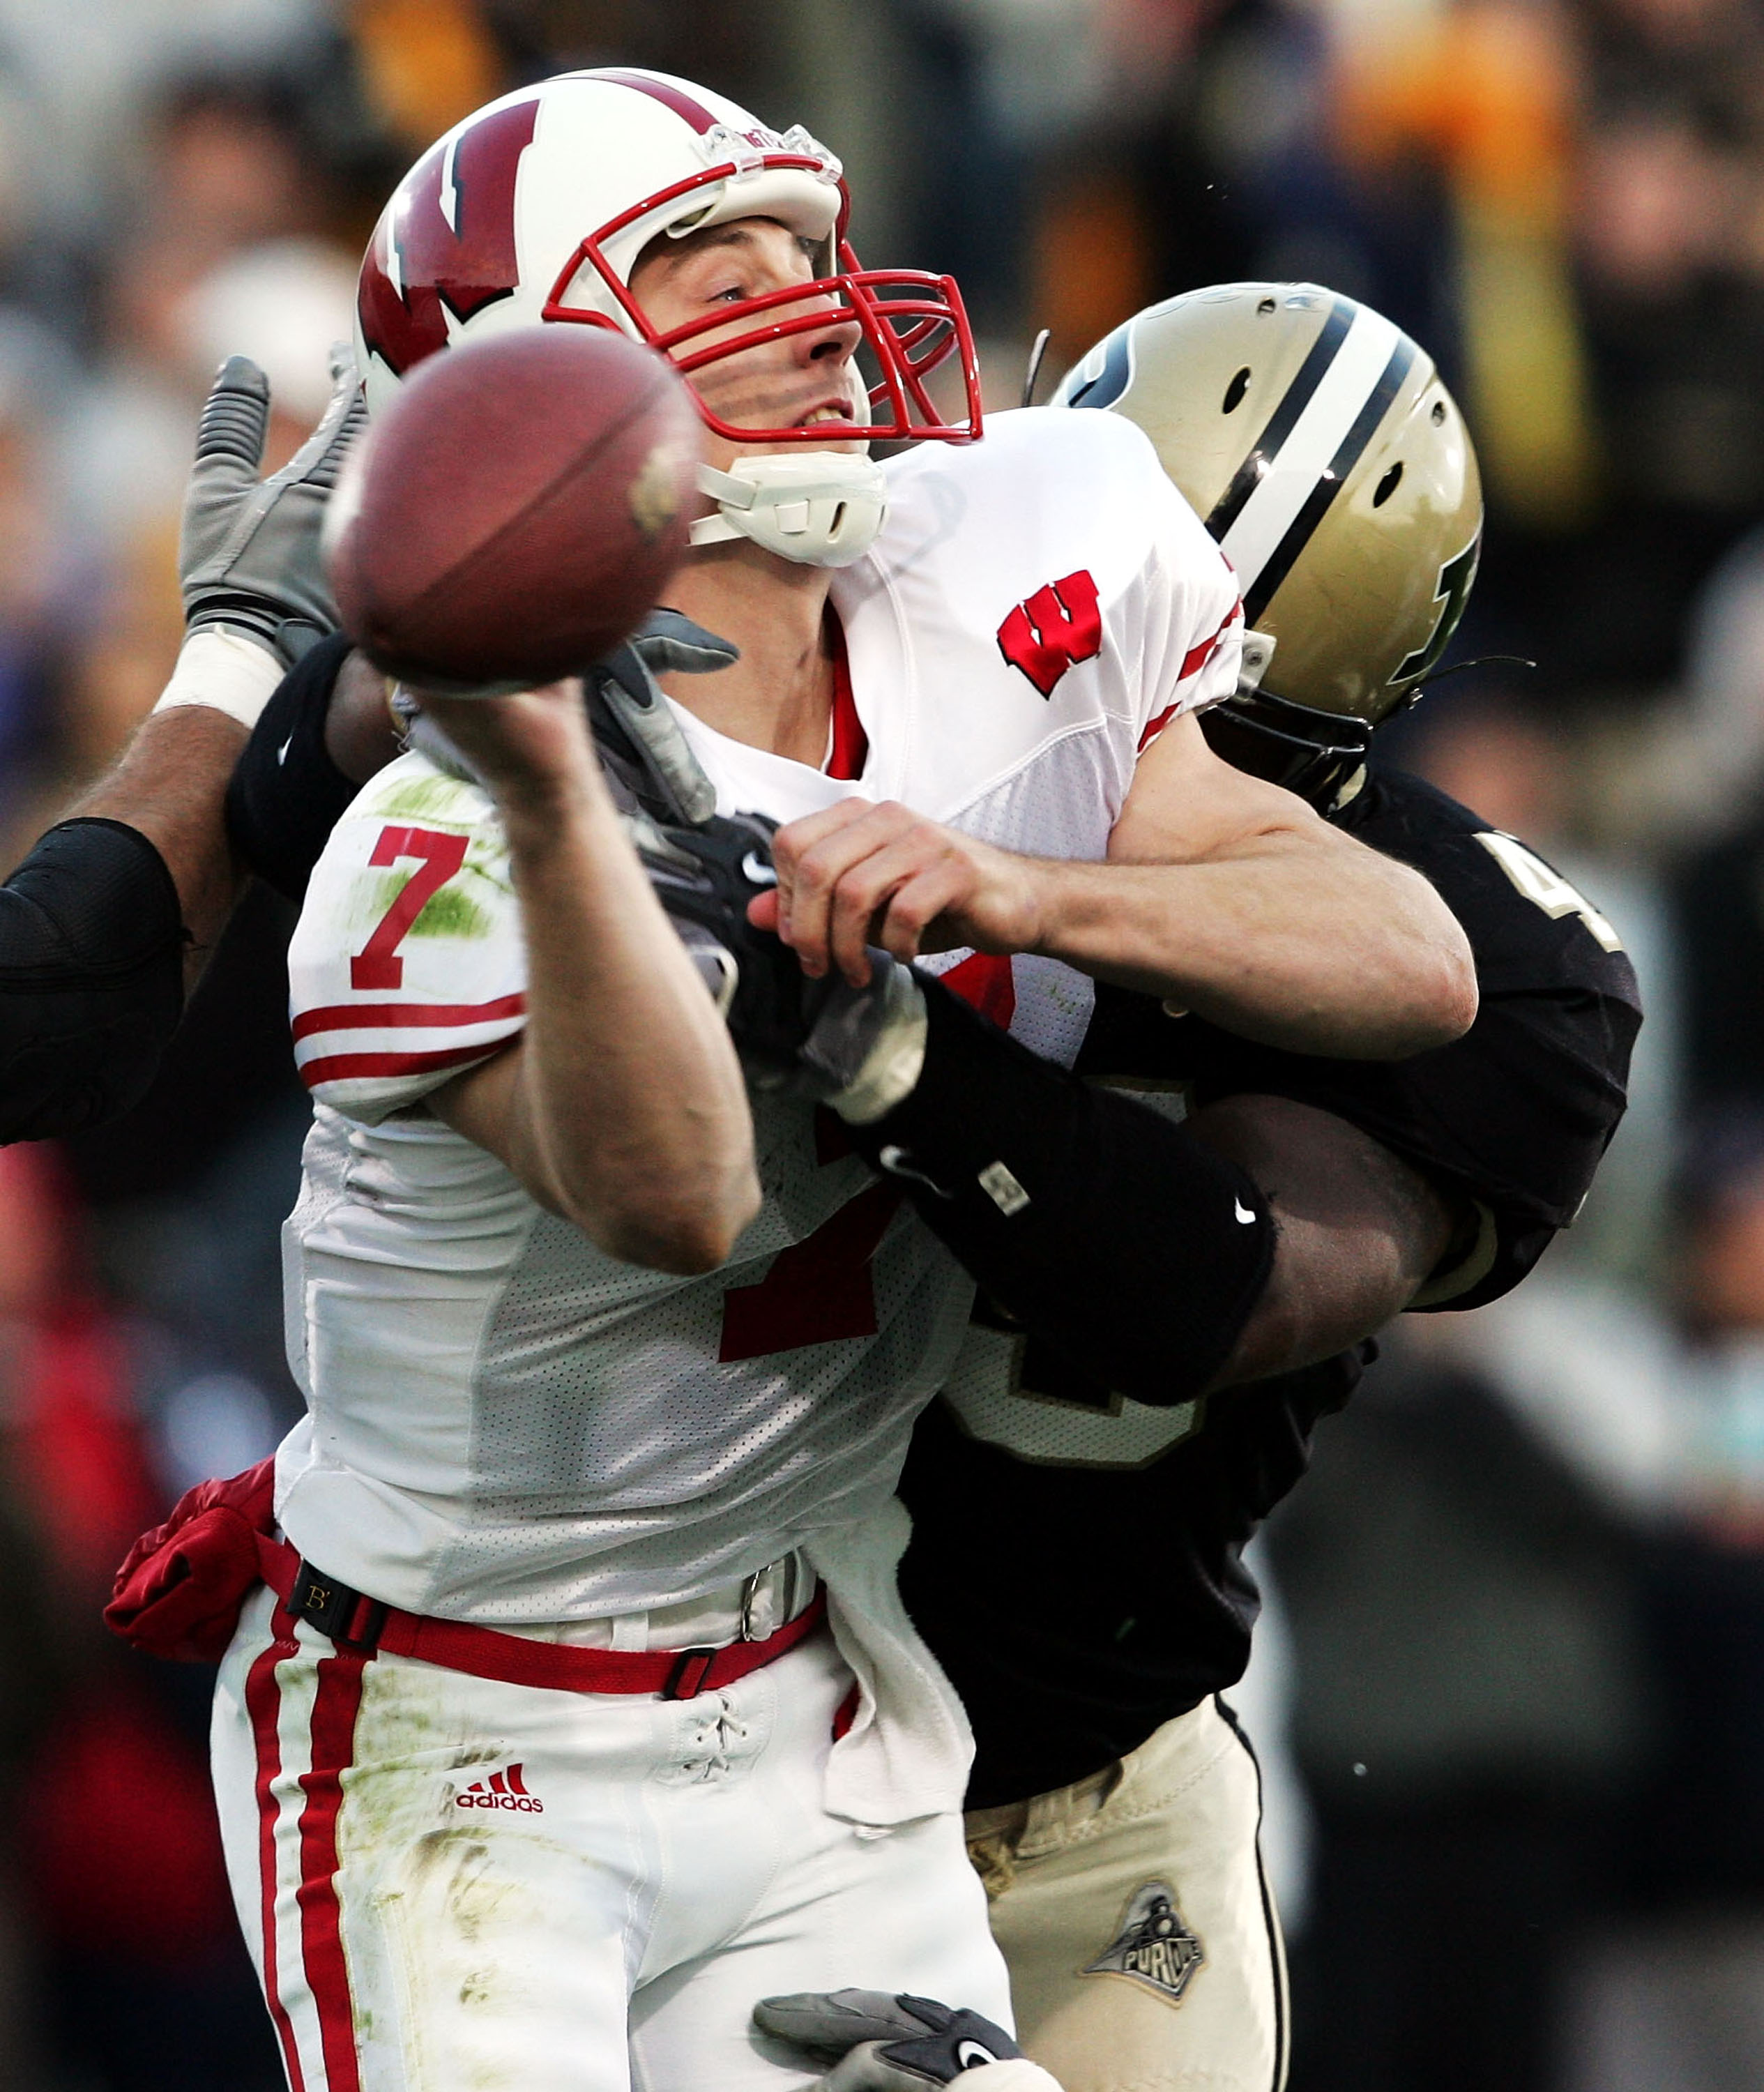 WEST LAYFAYETTE, IN - OCTOBER 16:  John Stocco #7 of Wisconsin throws the ball while being hit by Anthony Spencer #49 of Purdue  during the game at Ross-Ade Stadium on October 16, 2004 in West Lafayette, Indiana.    (Photo by Andy Lyons/Getty Images)